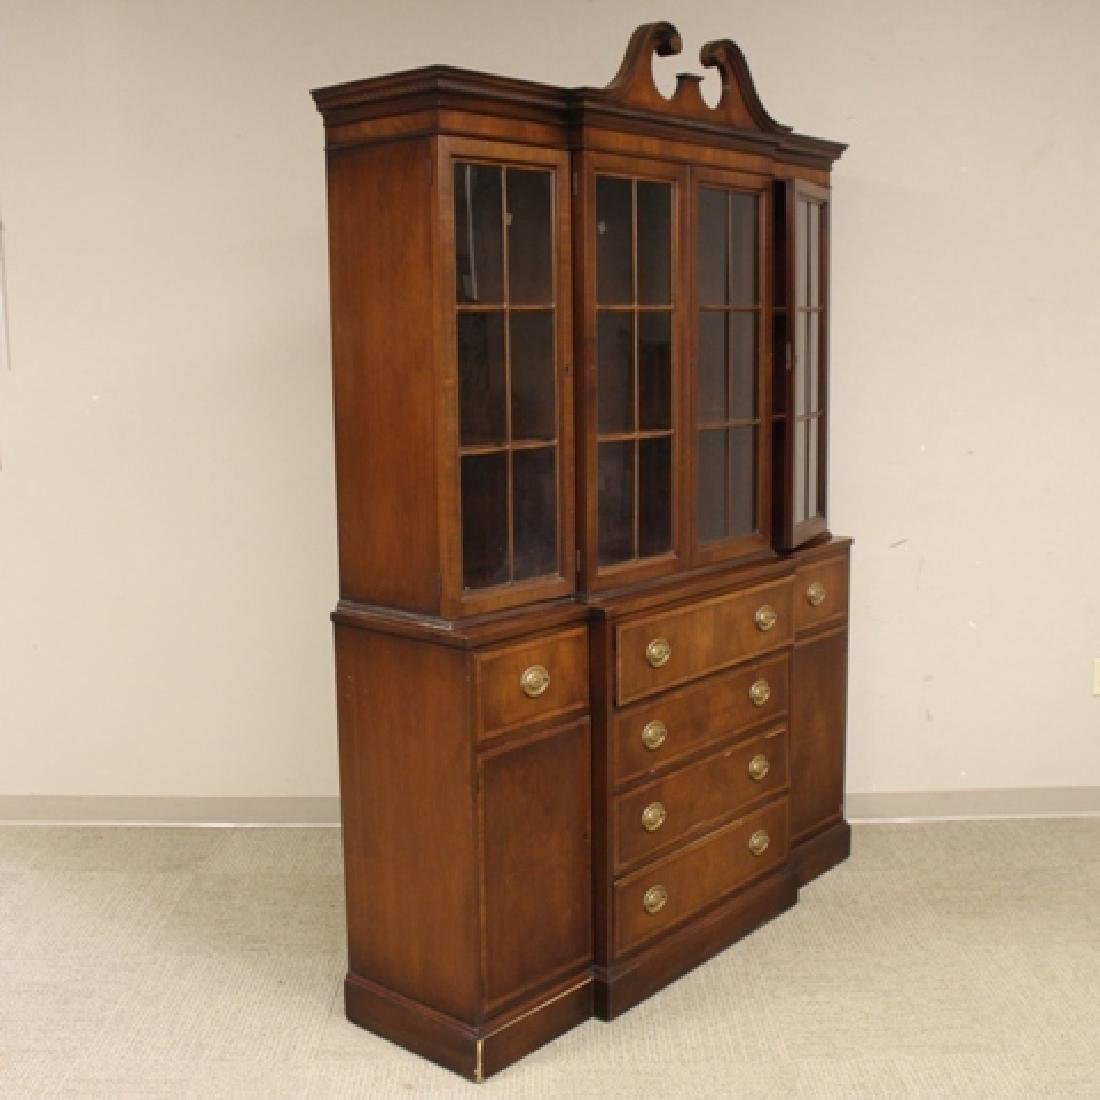 Mahogany Banded Johnson Furniture Co. Breakfront - 3